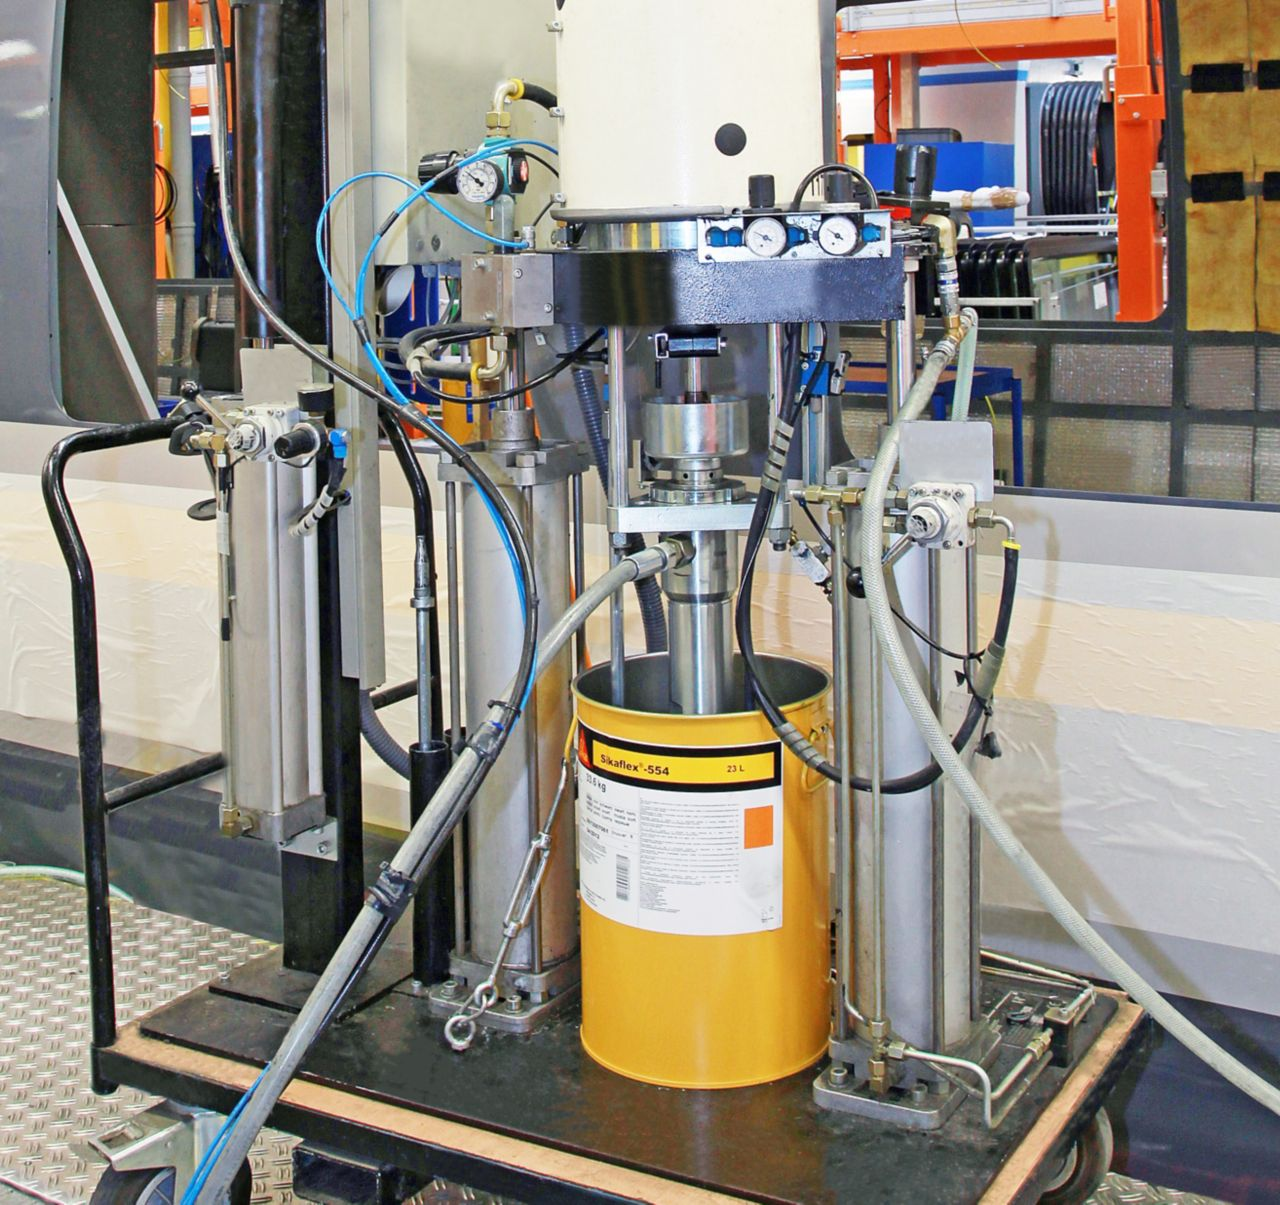 Booster application and pump system